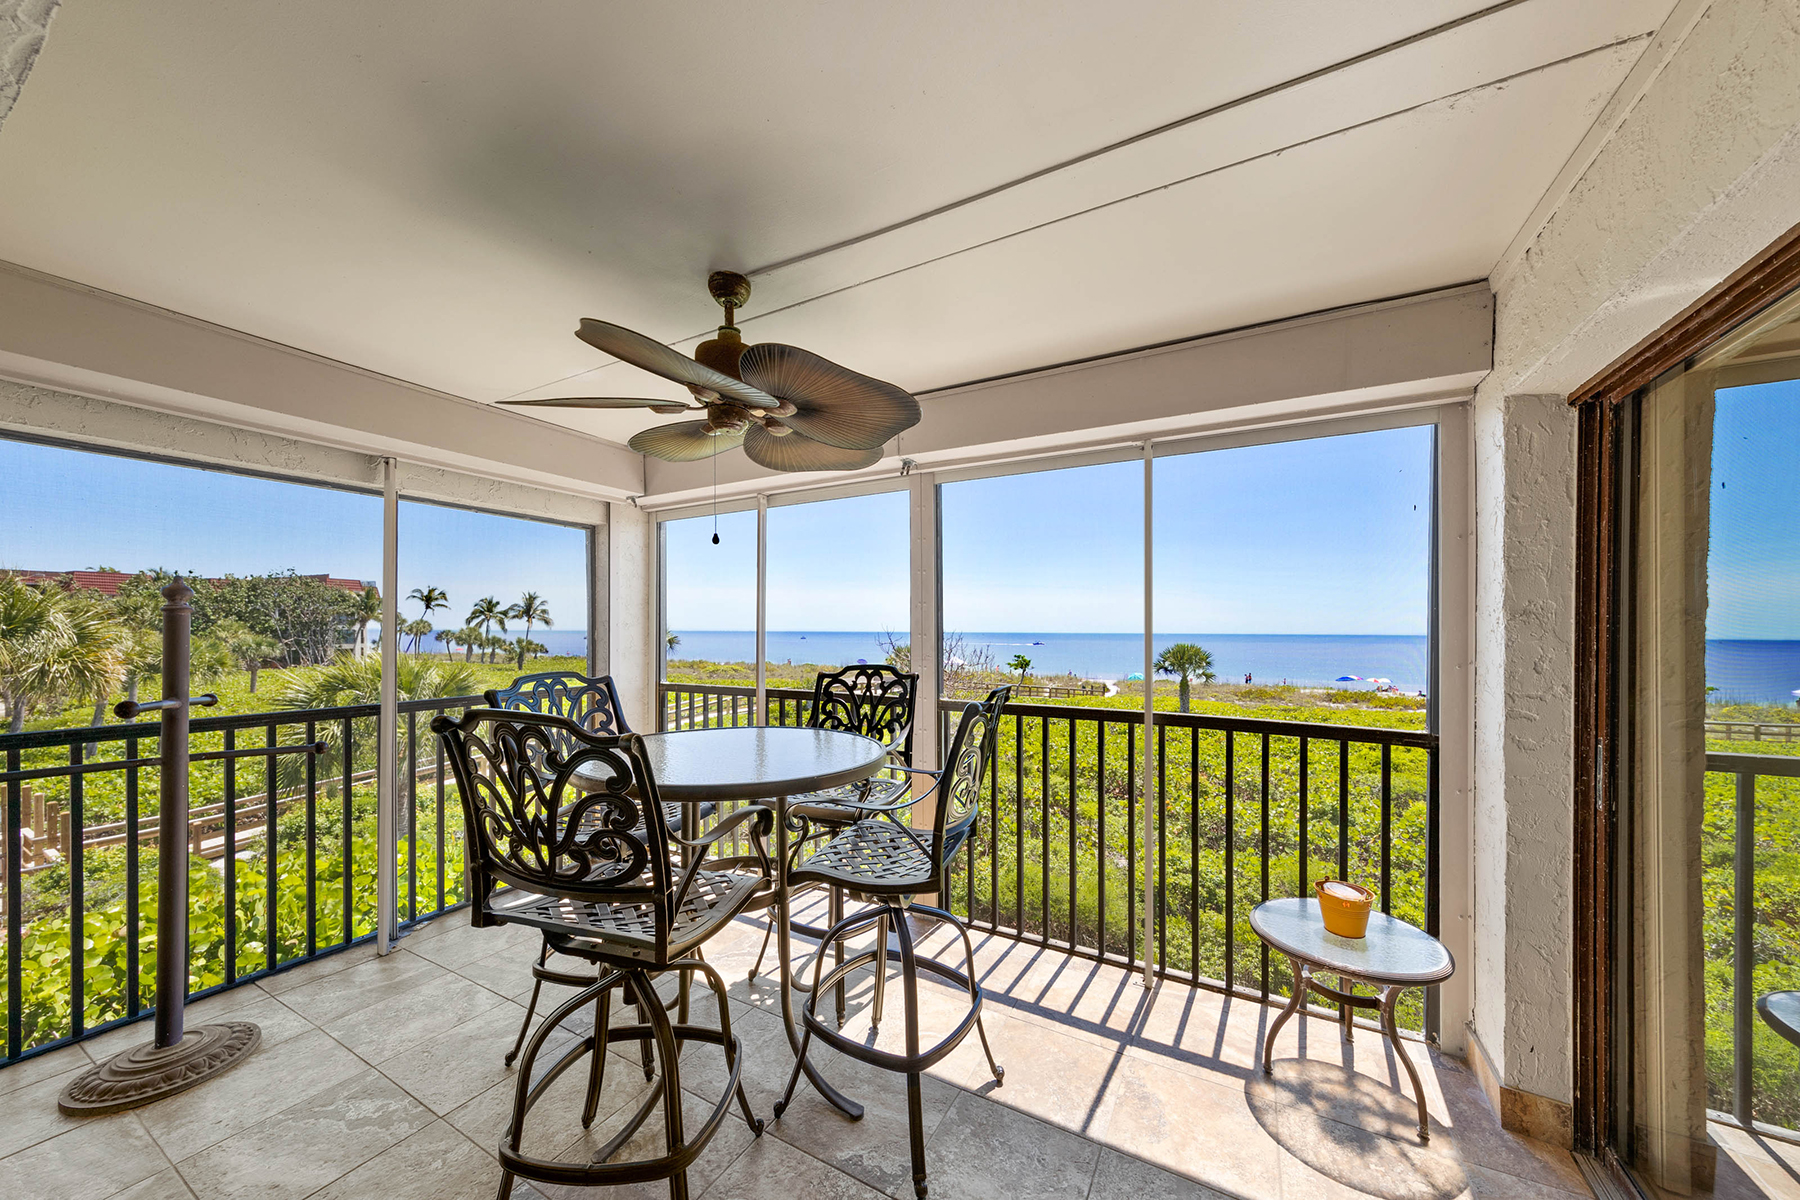 condominiums for Active at SANIBEL 2475 W Gulf Dr , 304 Sanibel, Florida 33957 United States